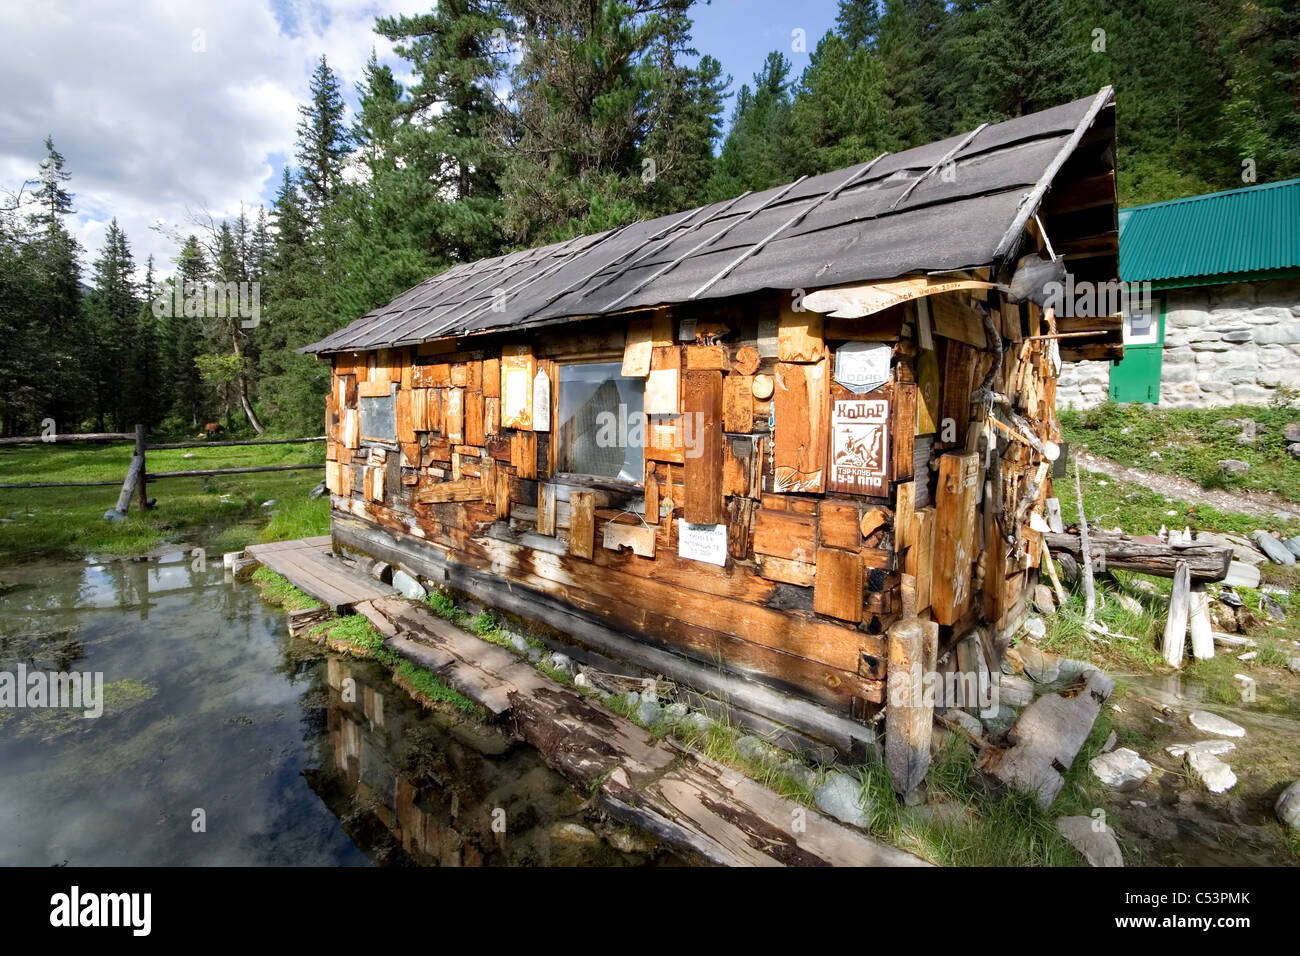 Wood hut in taiga with national symbols, images and mineral bath inside. Mineral springs Sayan Mountains. Siberia. - Stock Image